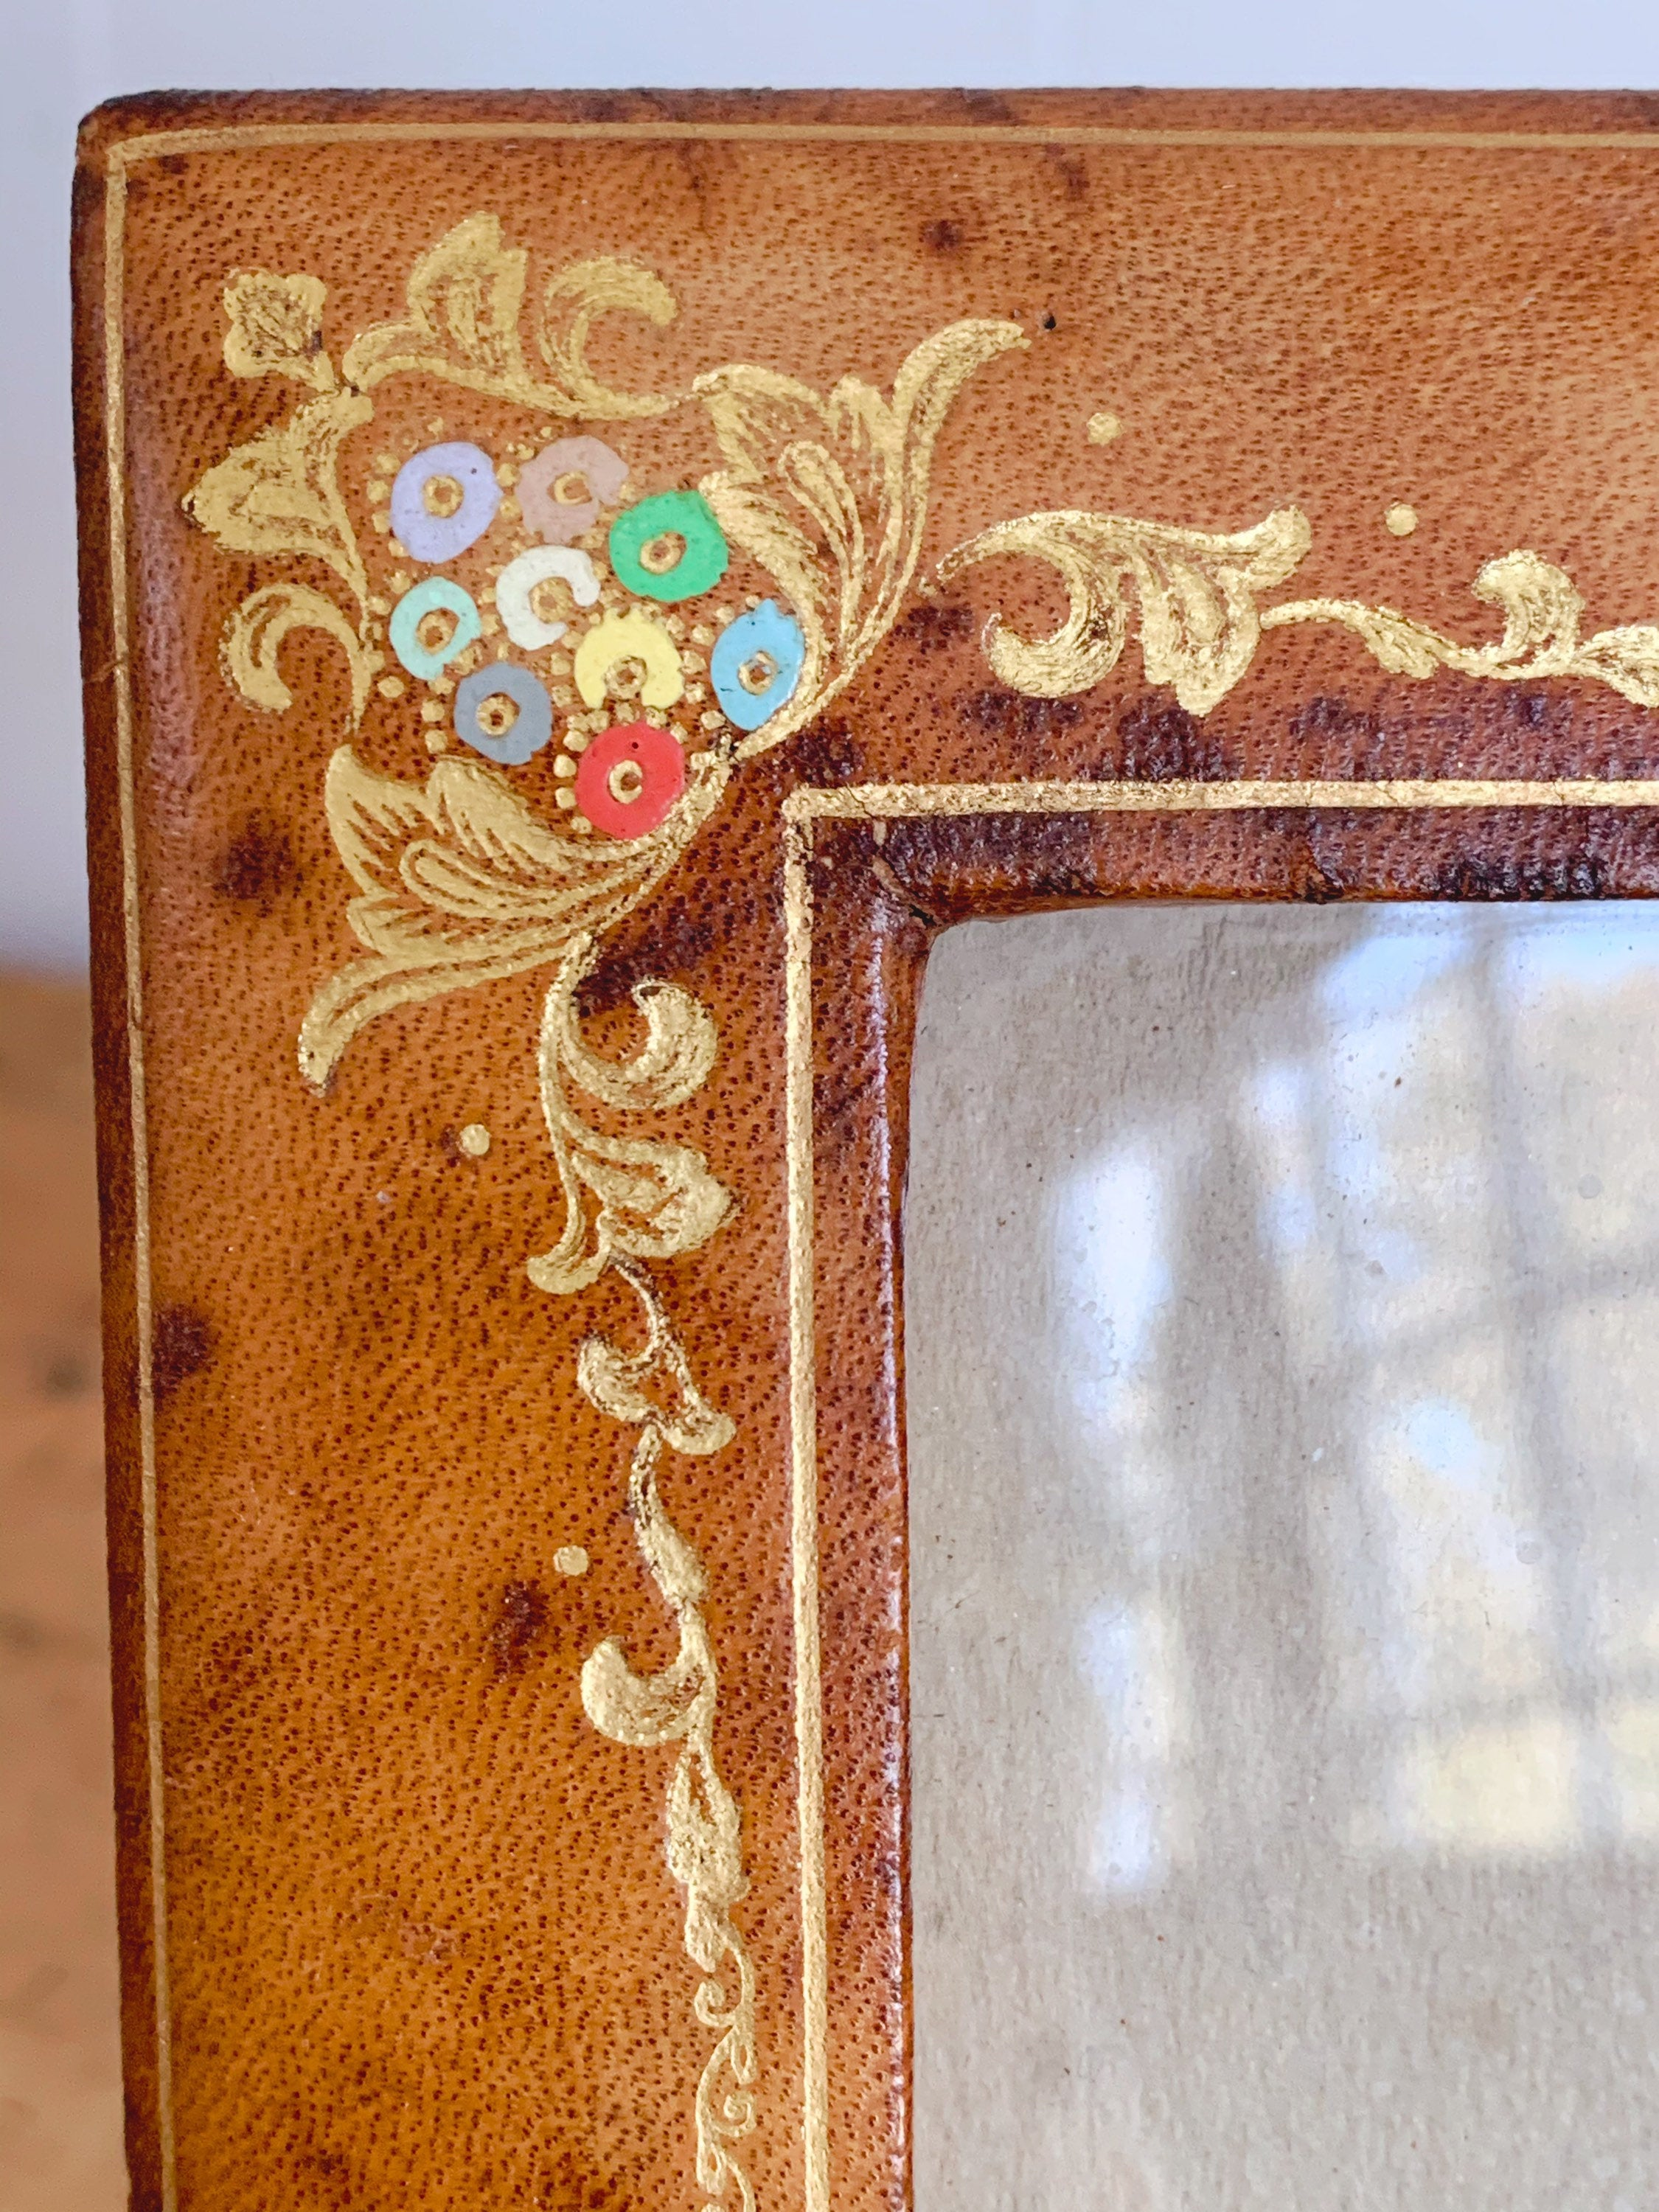 Handsome Vintage Alexander's Genuine Leather Picture Frame with Hand Painted Flowers | Brown Leather Photo Frame Home Decor